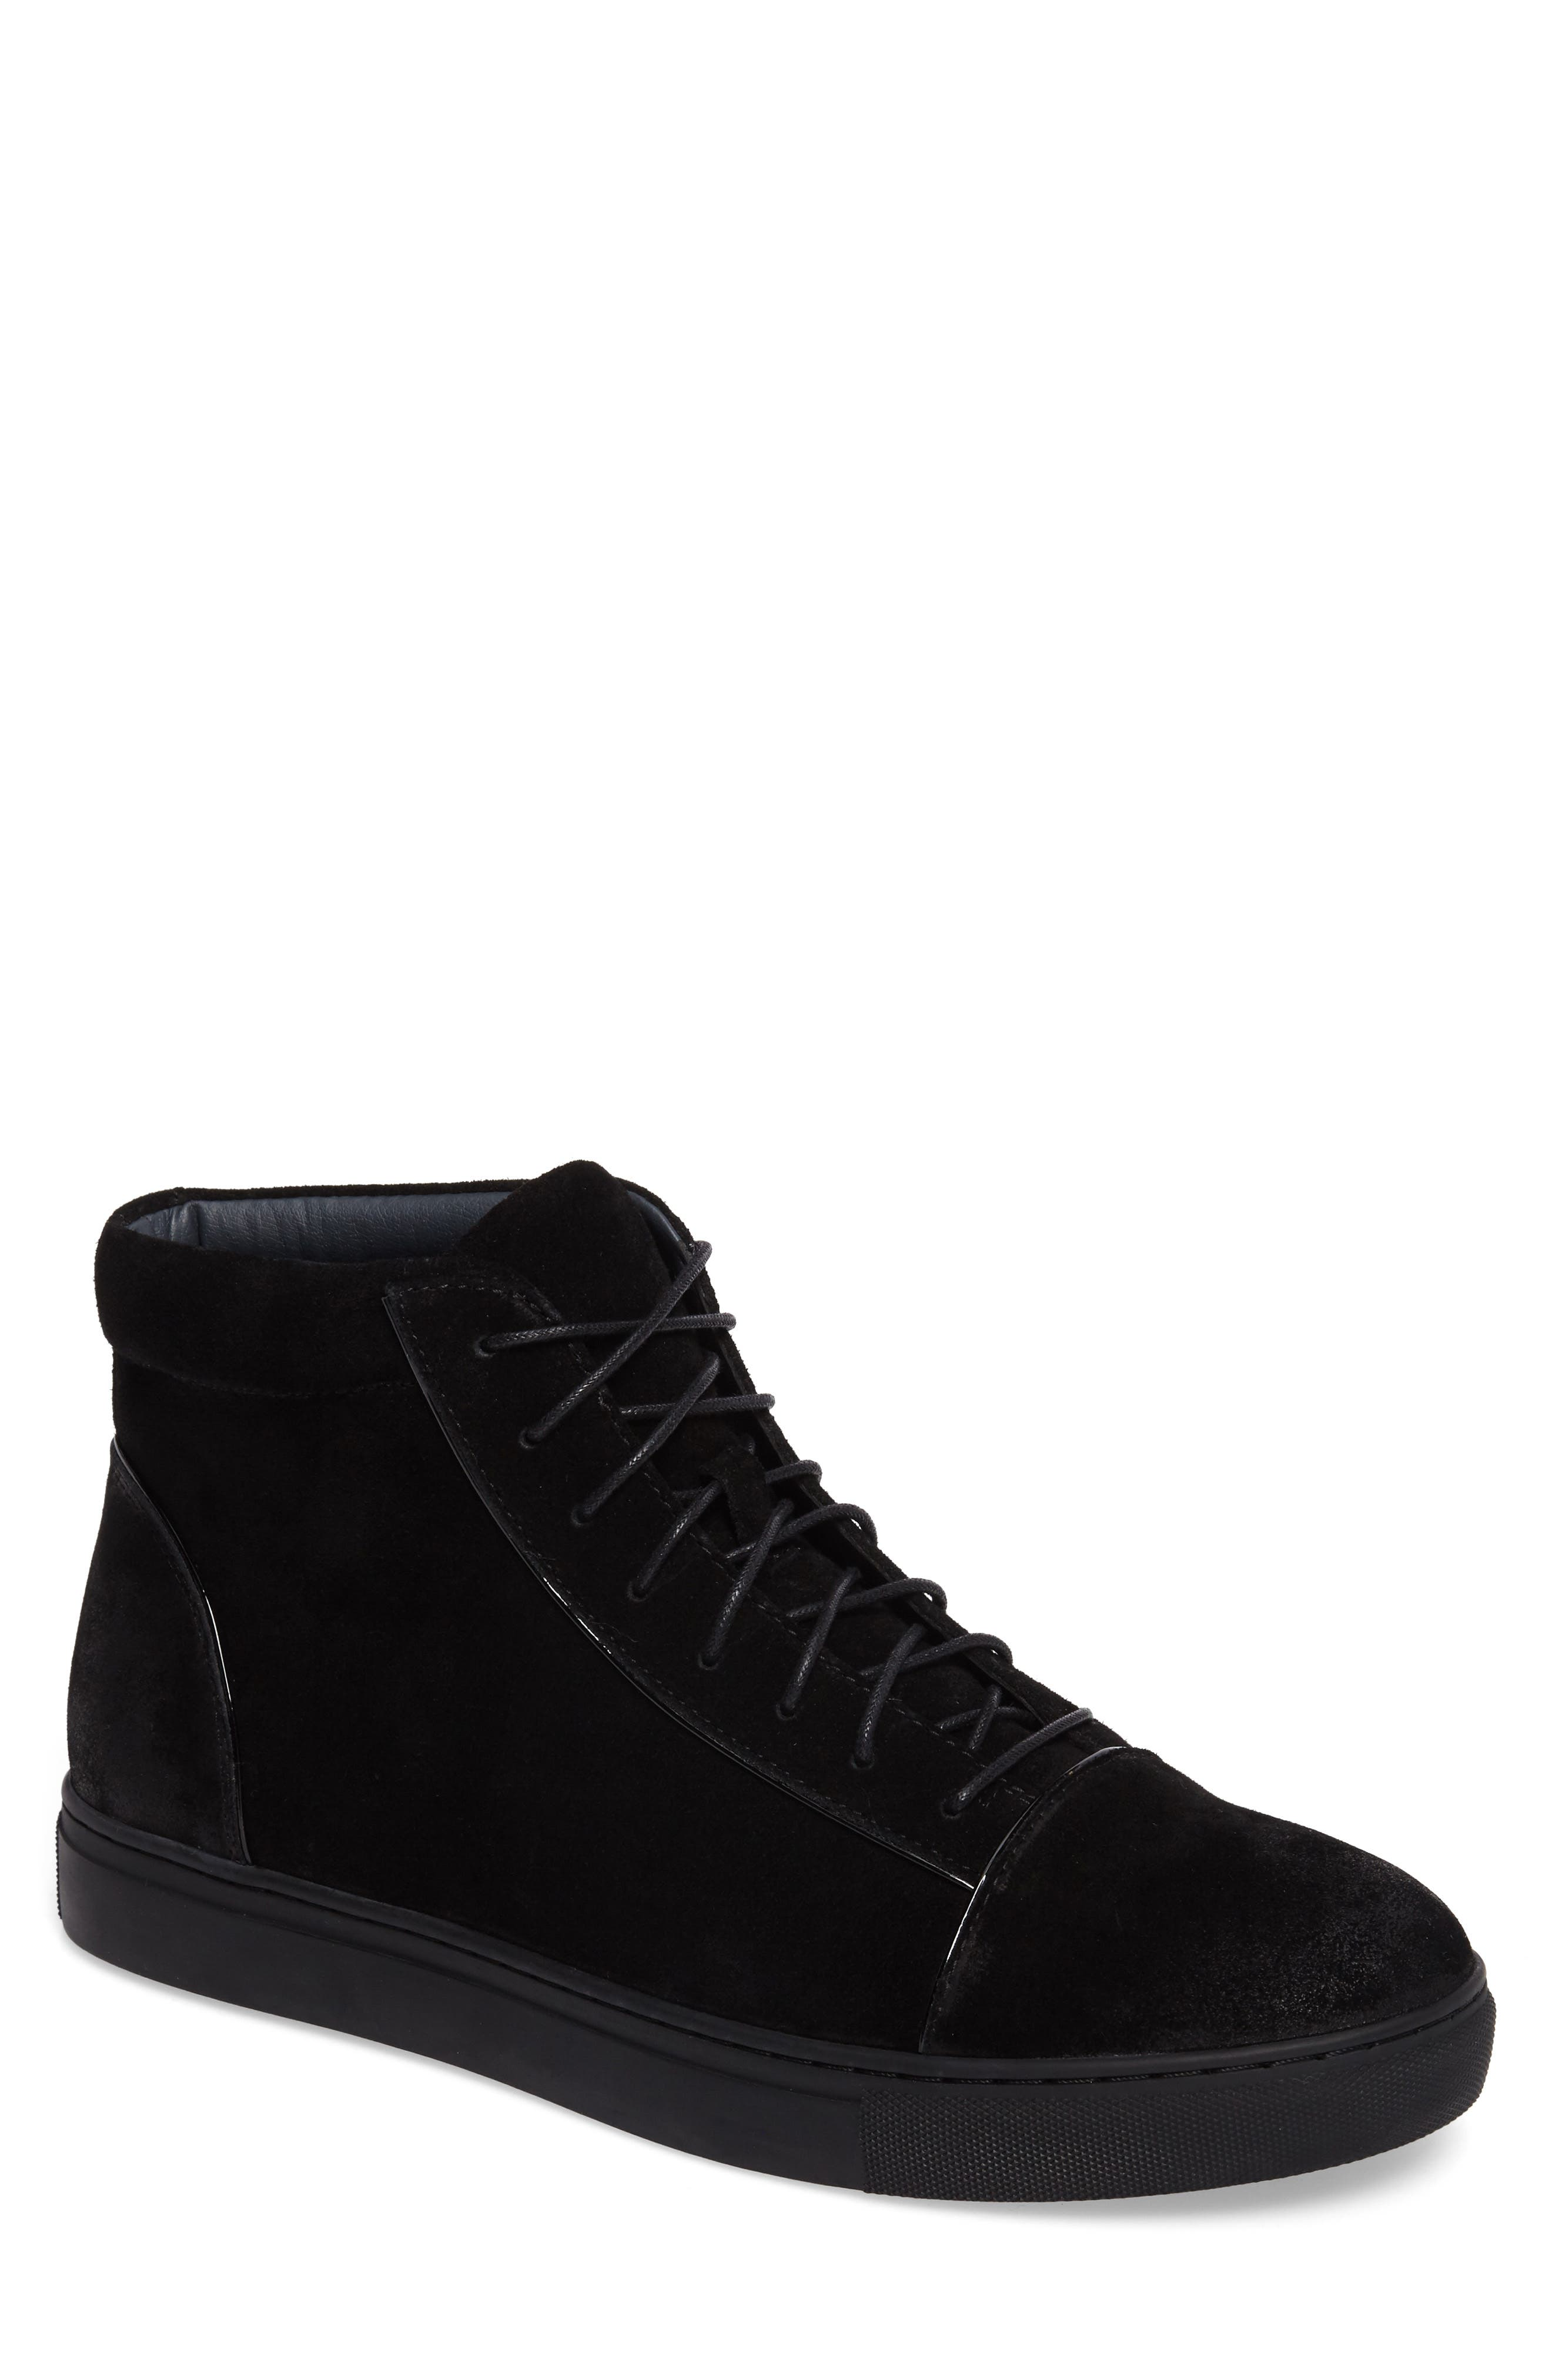 Grundy Sneaker,                             Main thumbnail 1, color,                             Black Suede